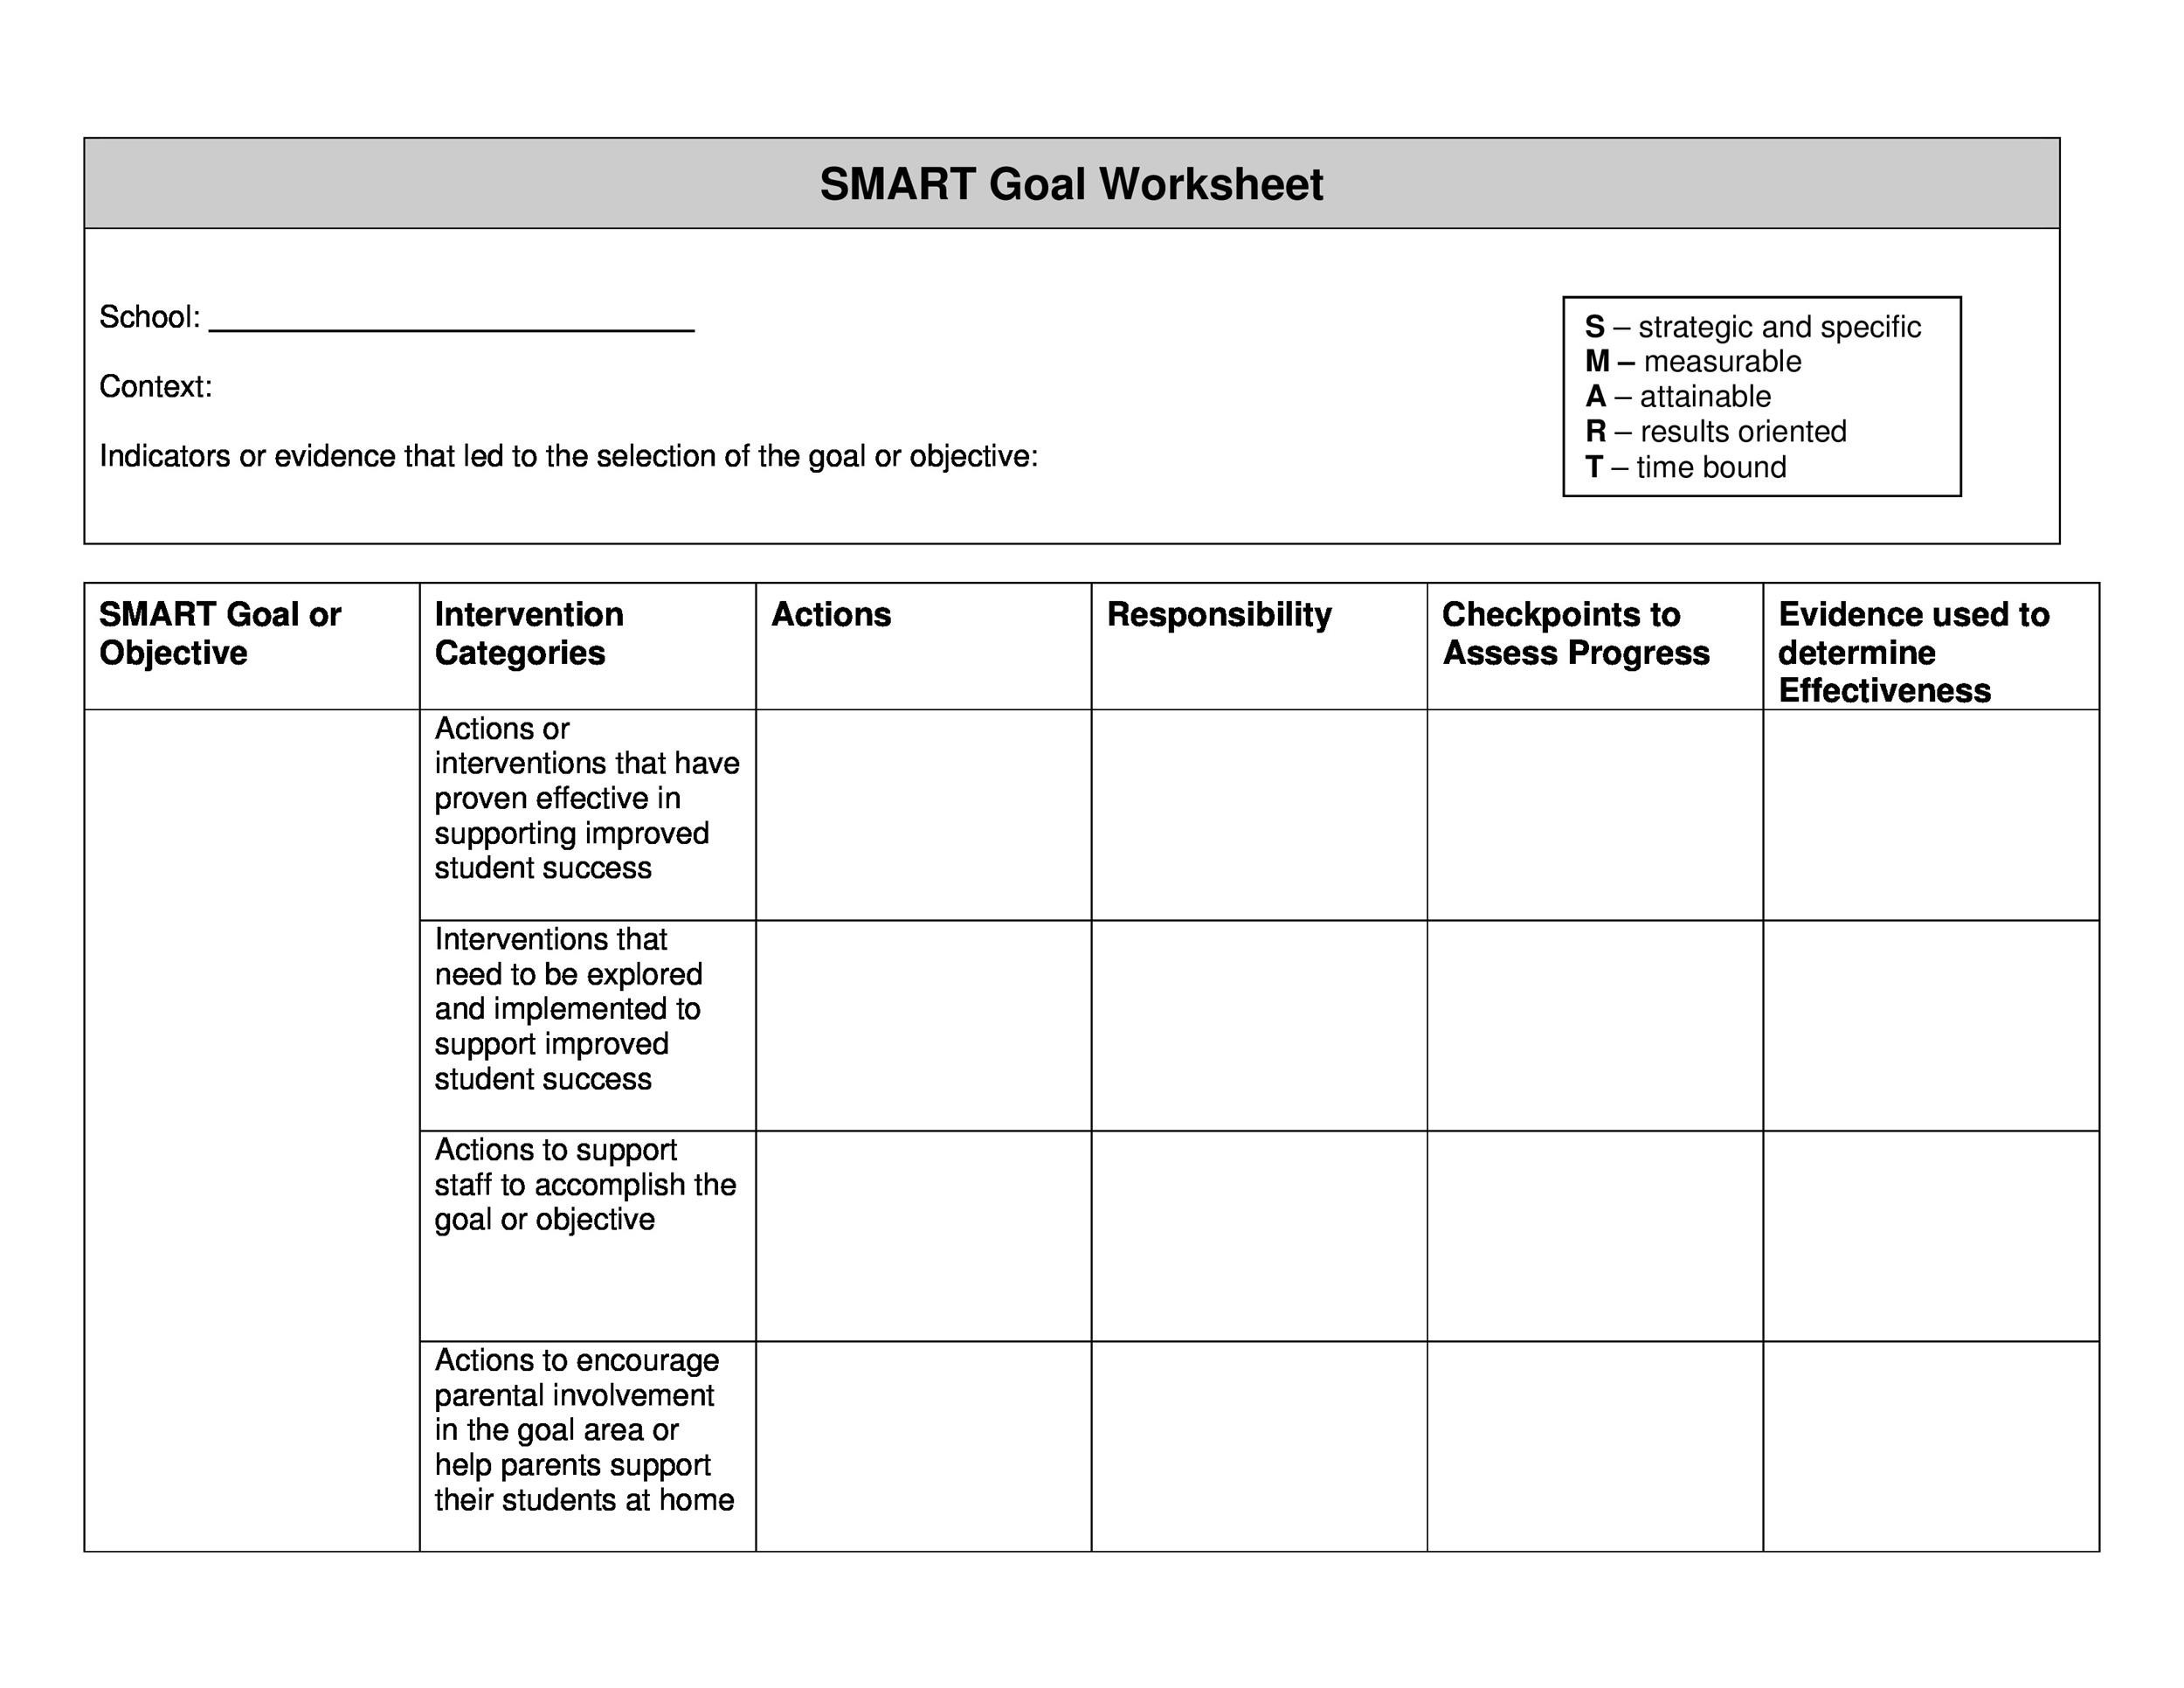 worksheet Smart Goals Worksheet For Students smart goal template daway dabrowa co 48 goals templates examples worksheets lab